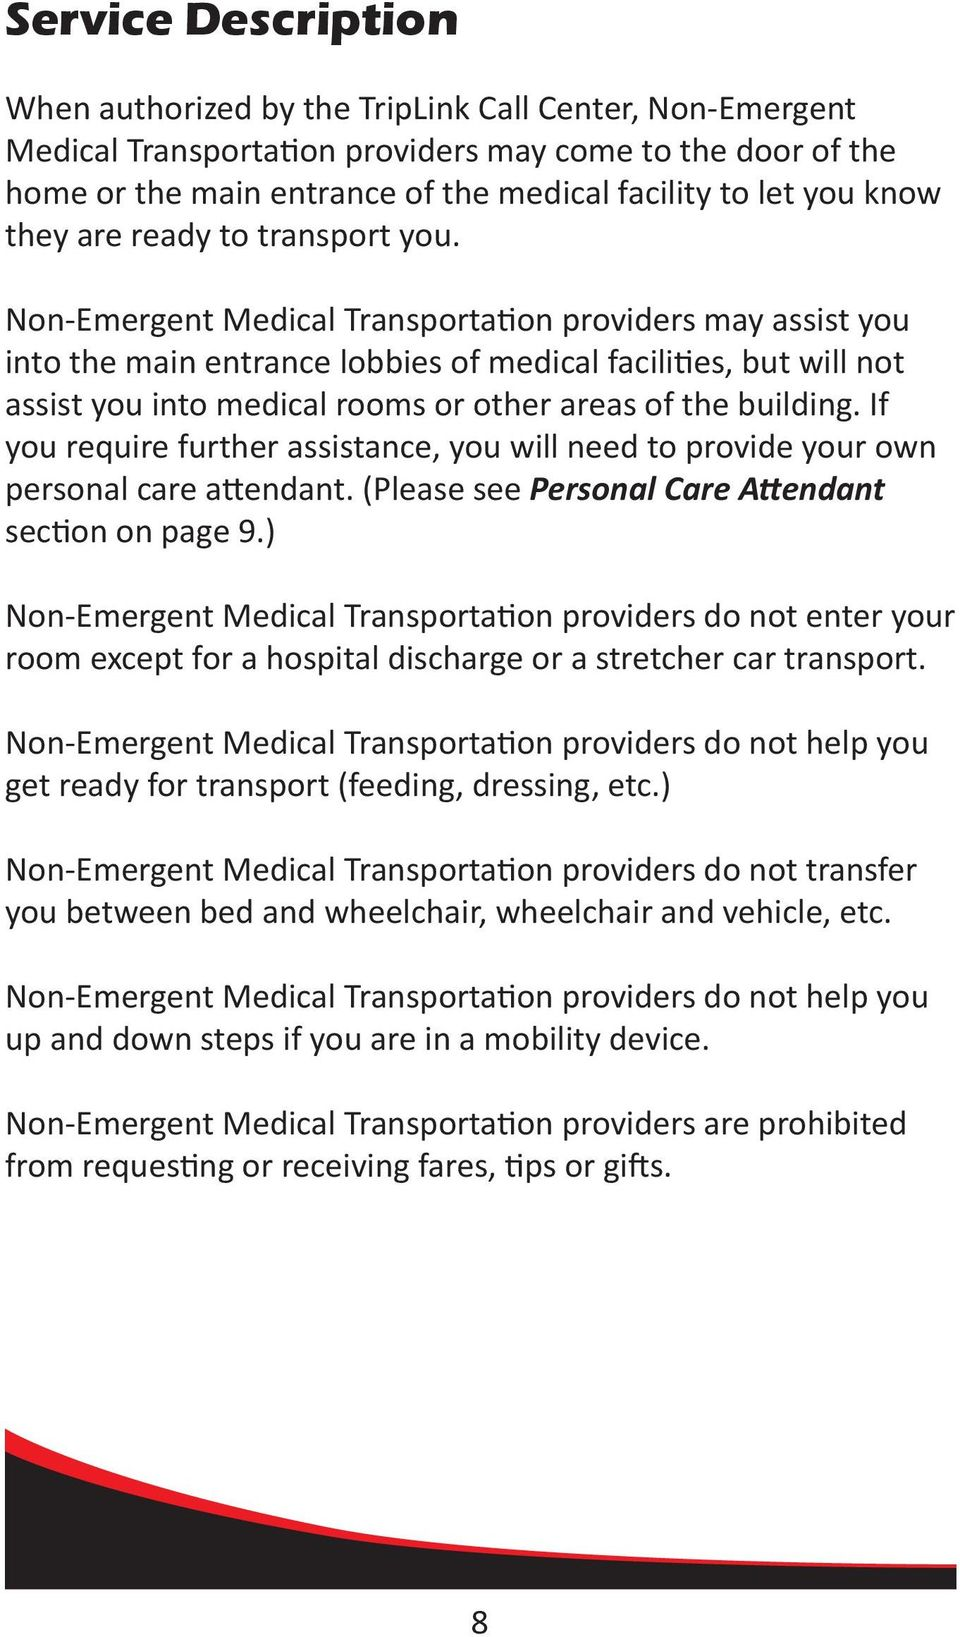 Non-Emergent Medical Transportation providers may assist you into the main entrance lobbies of medical facilities, but will not assist you into medical rooms or other areas of the building.